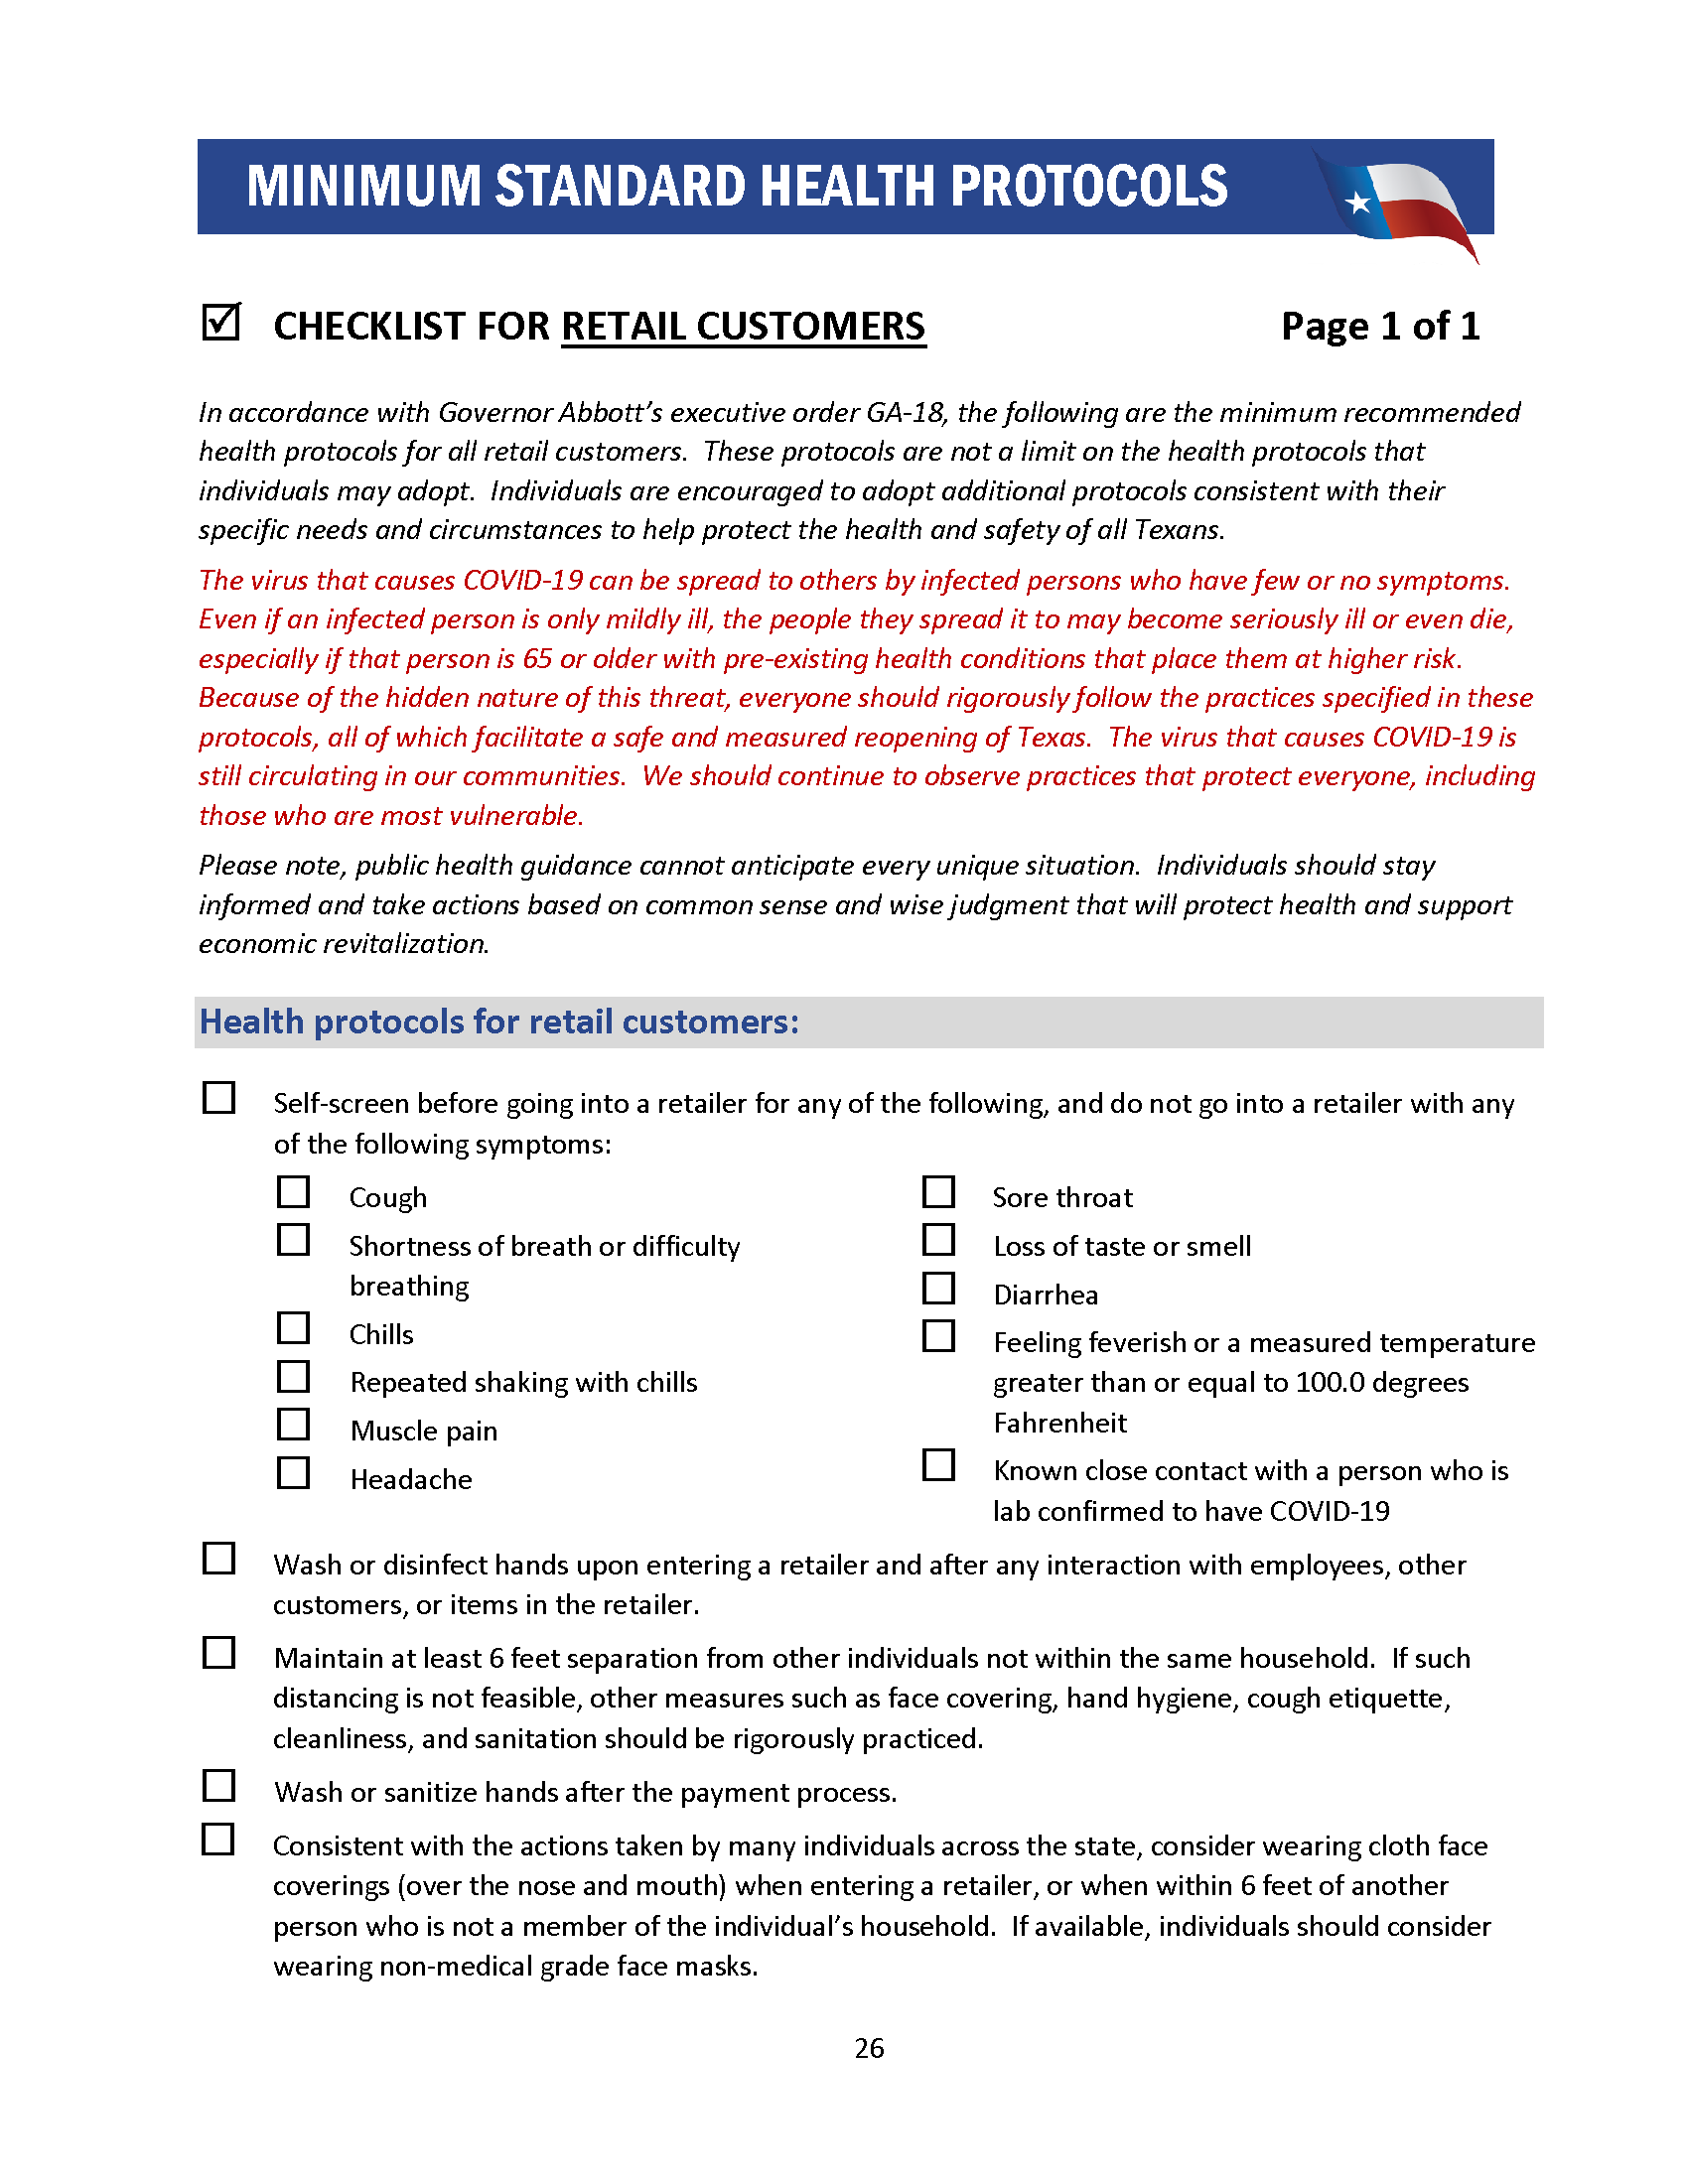 Checklist for Retail Customers